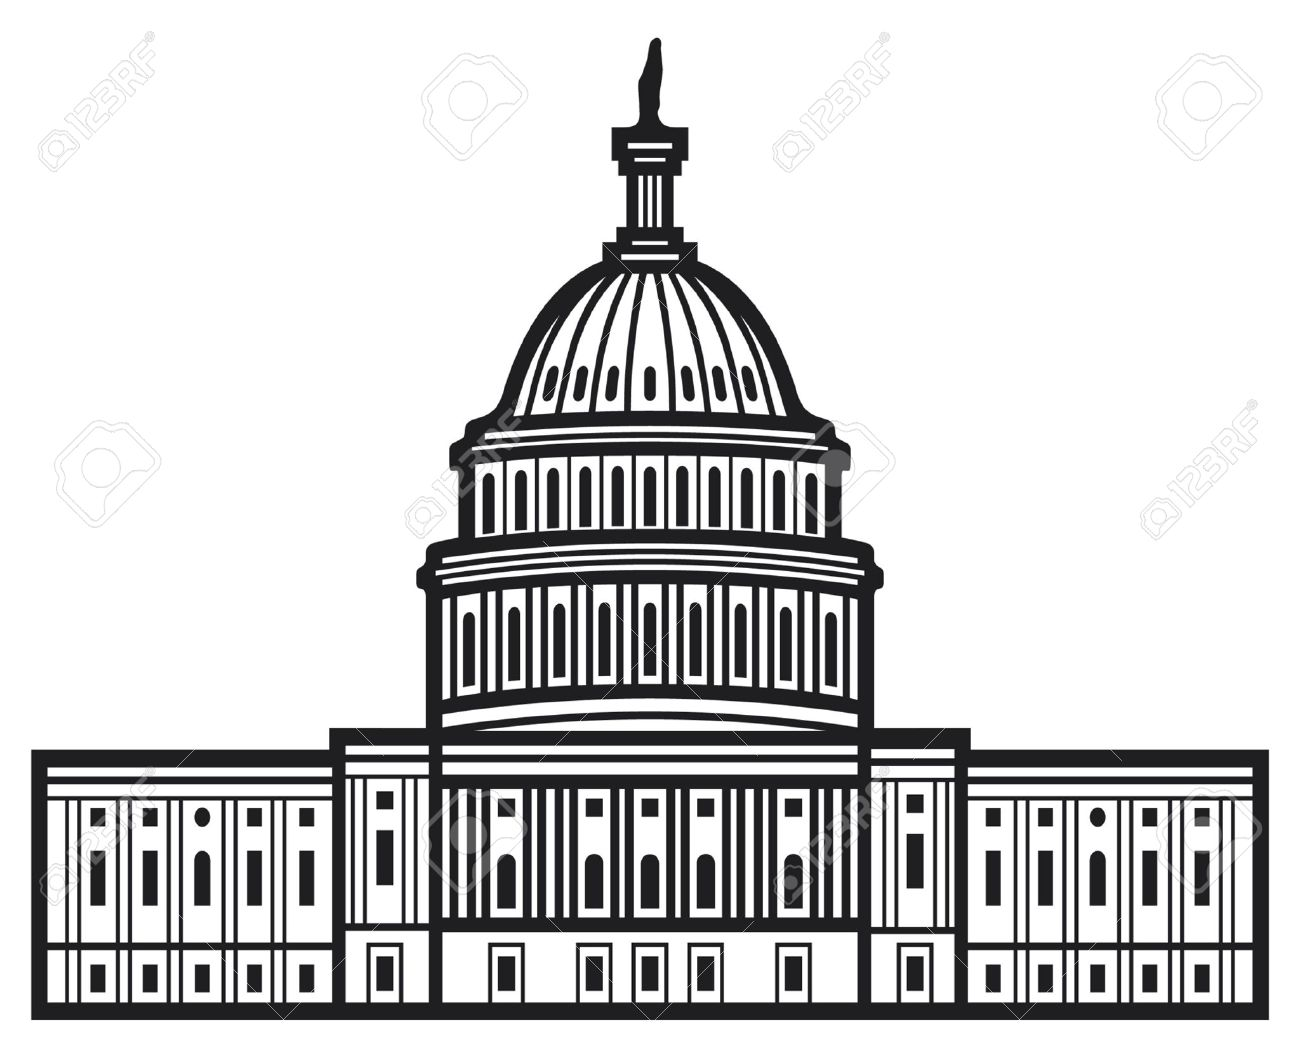 Us capitol clip art clip royalty free library Us capitol dome clipart - ClipartFest clip royalty free library